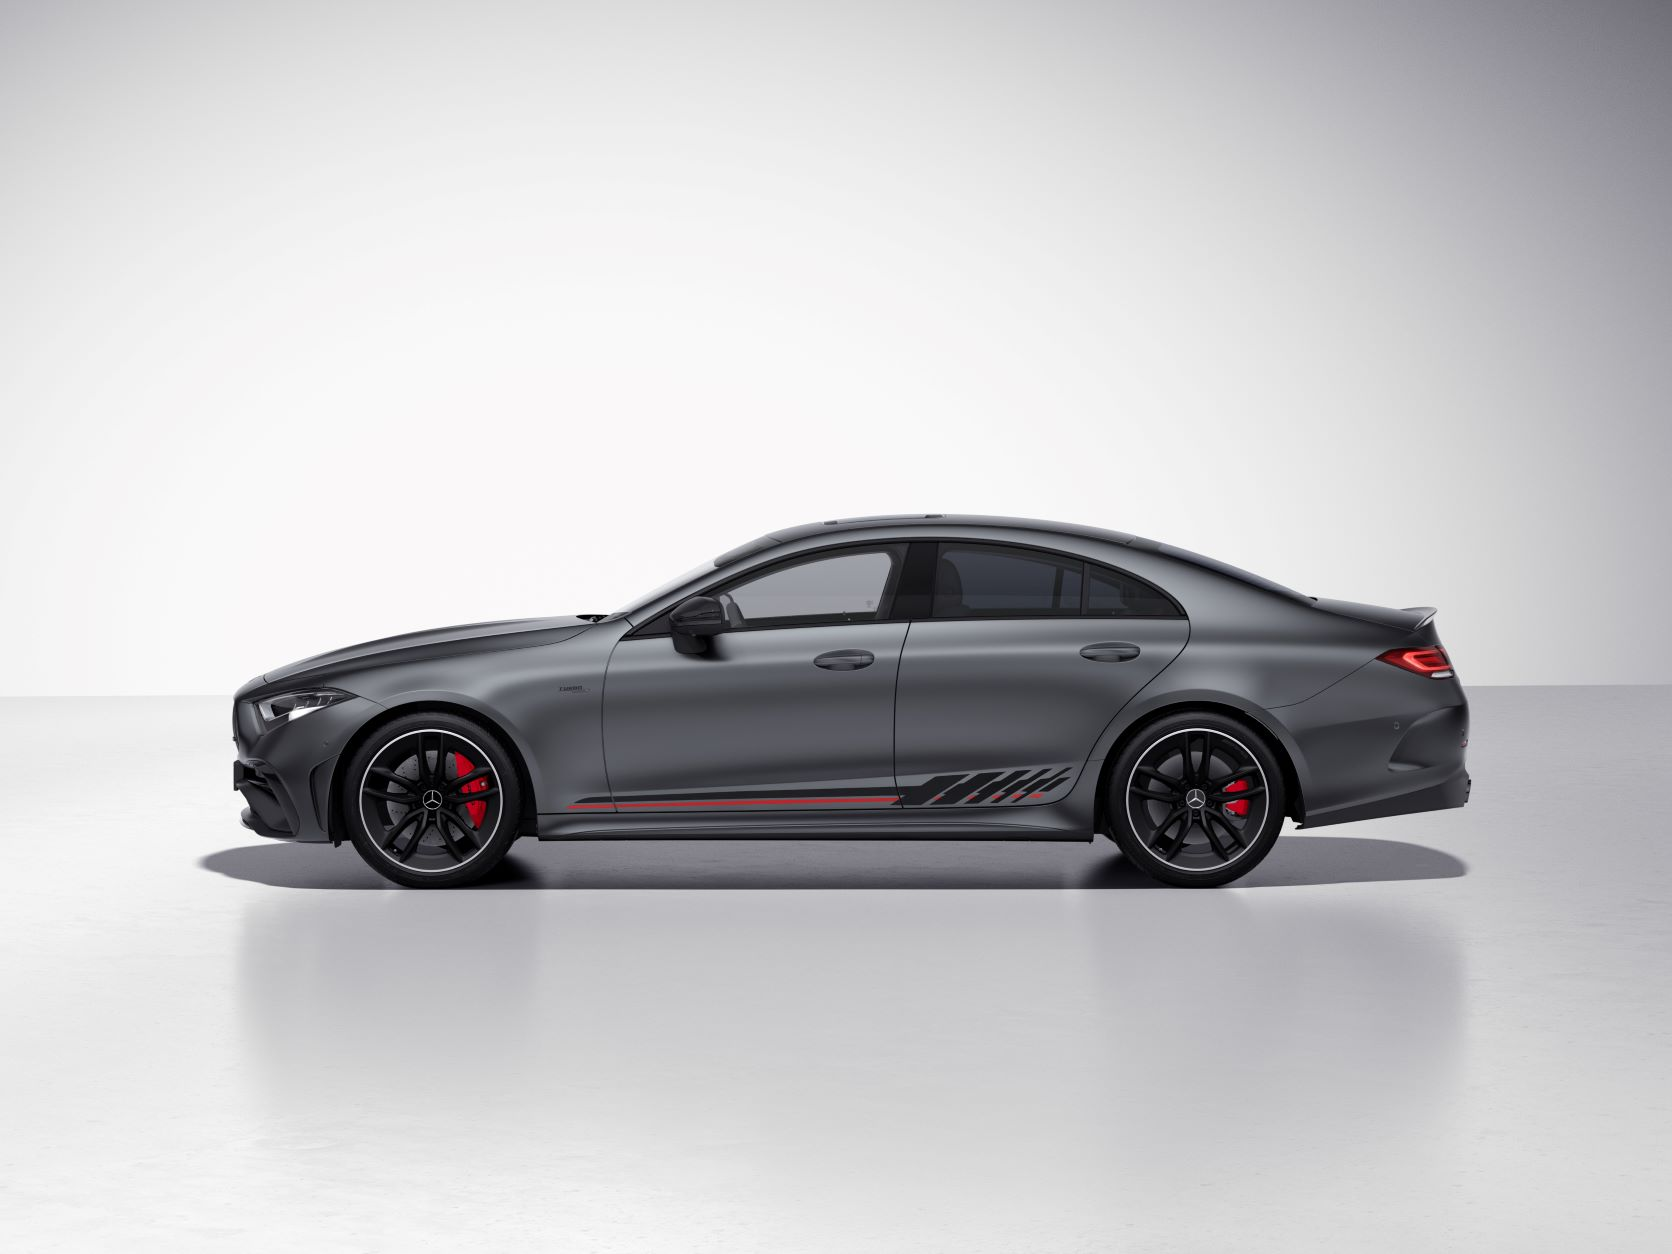 Limited Edition version of the Mercedes-AMG CLS53 4MATIC+